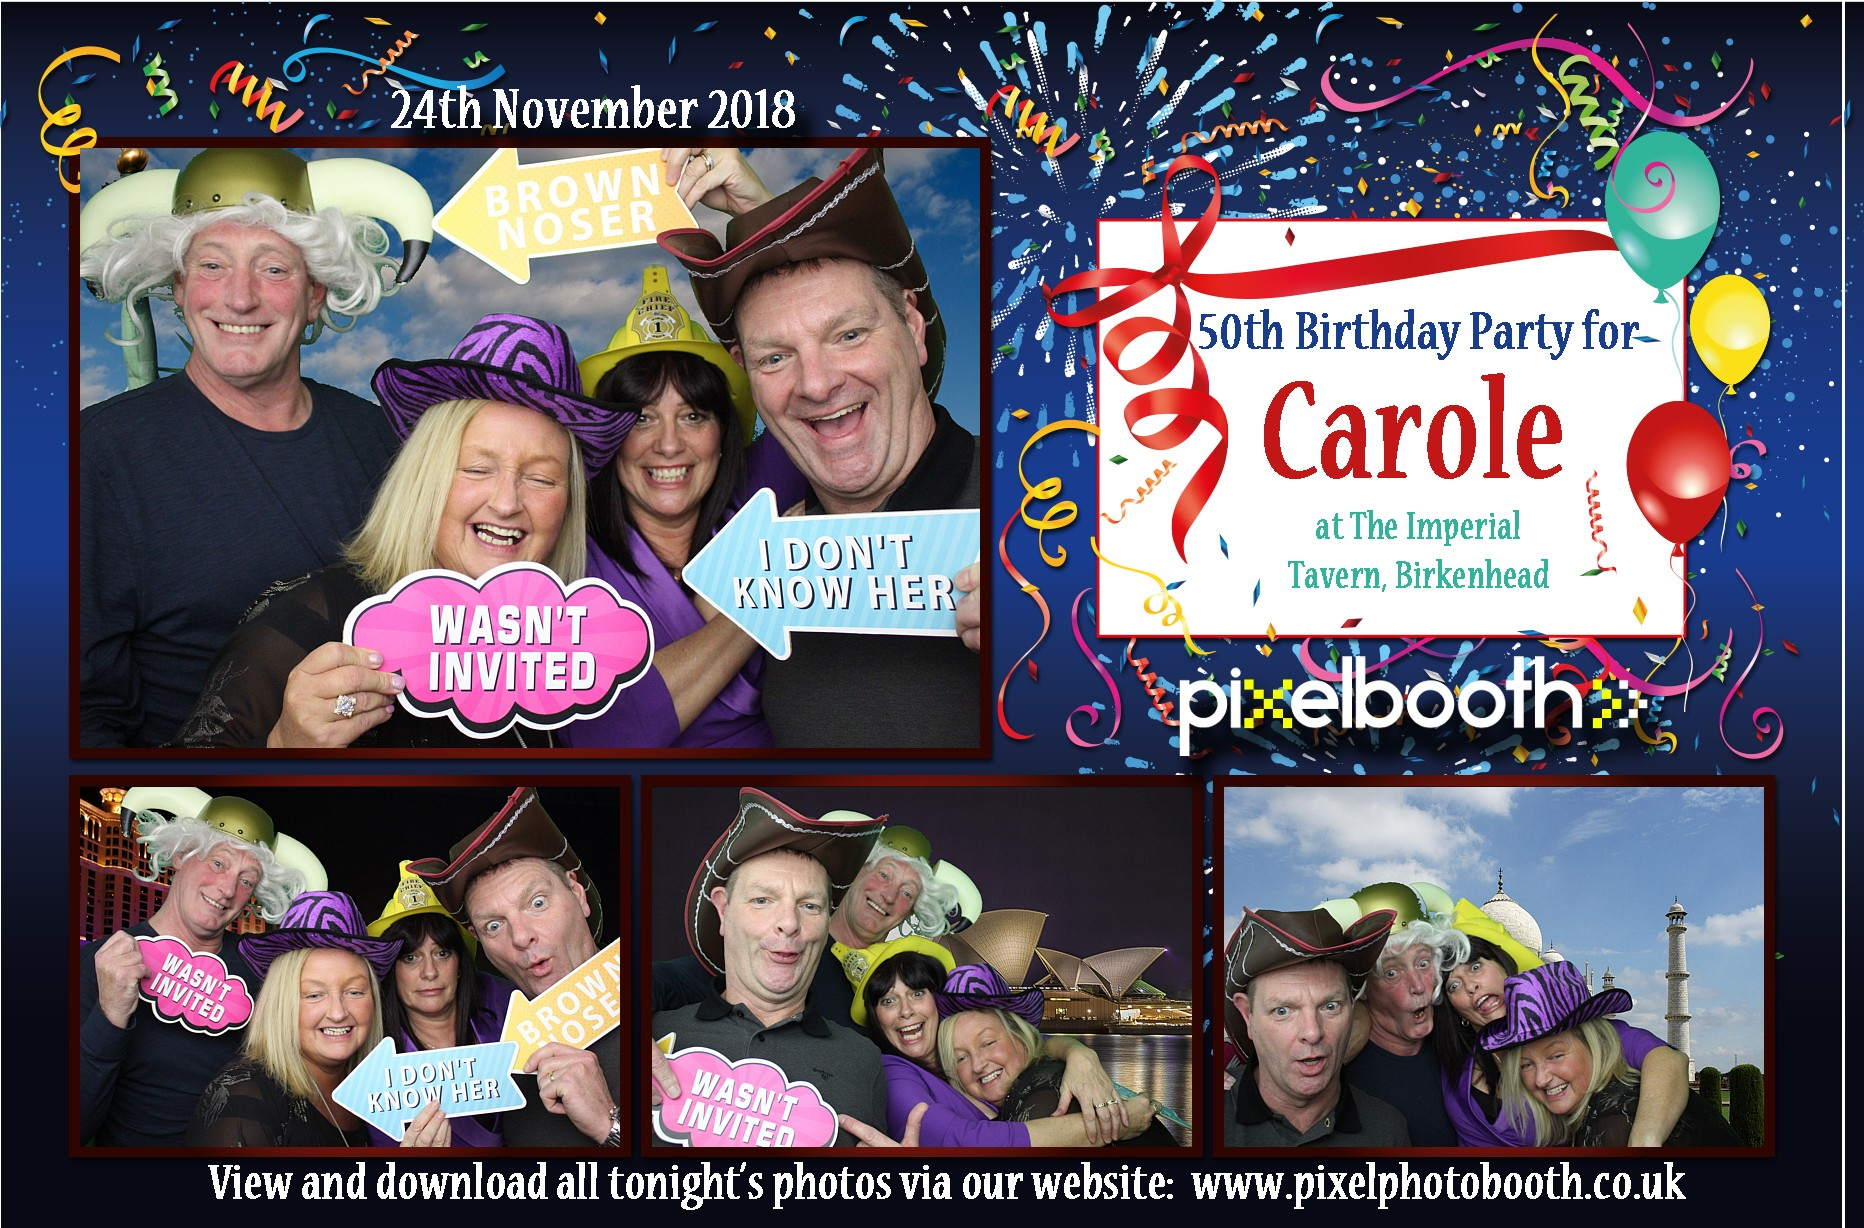 24th Nov 2018: 50th Birthday for Carole at The Imperial Tavern